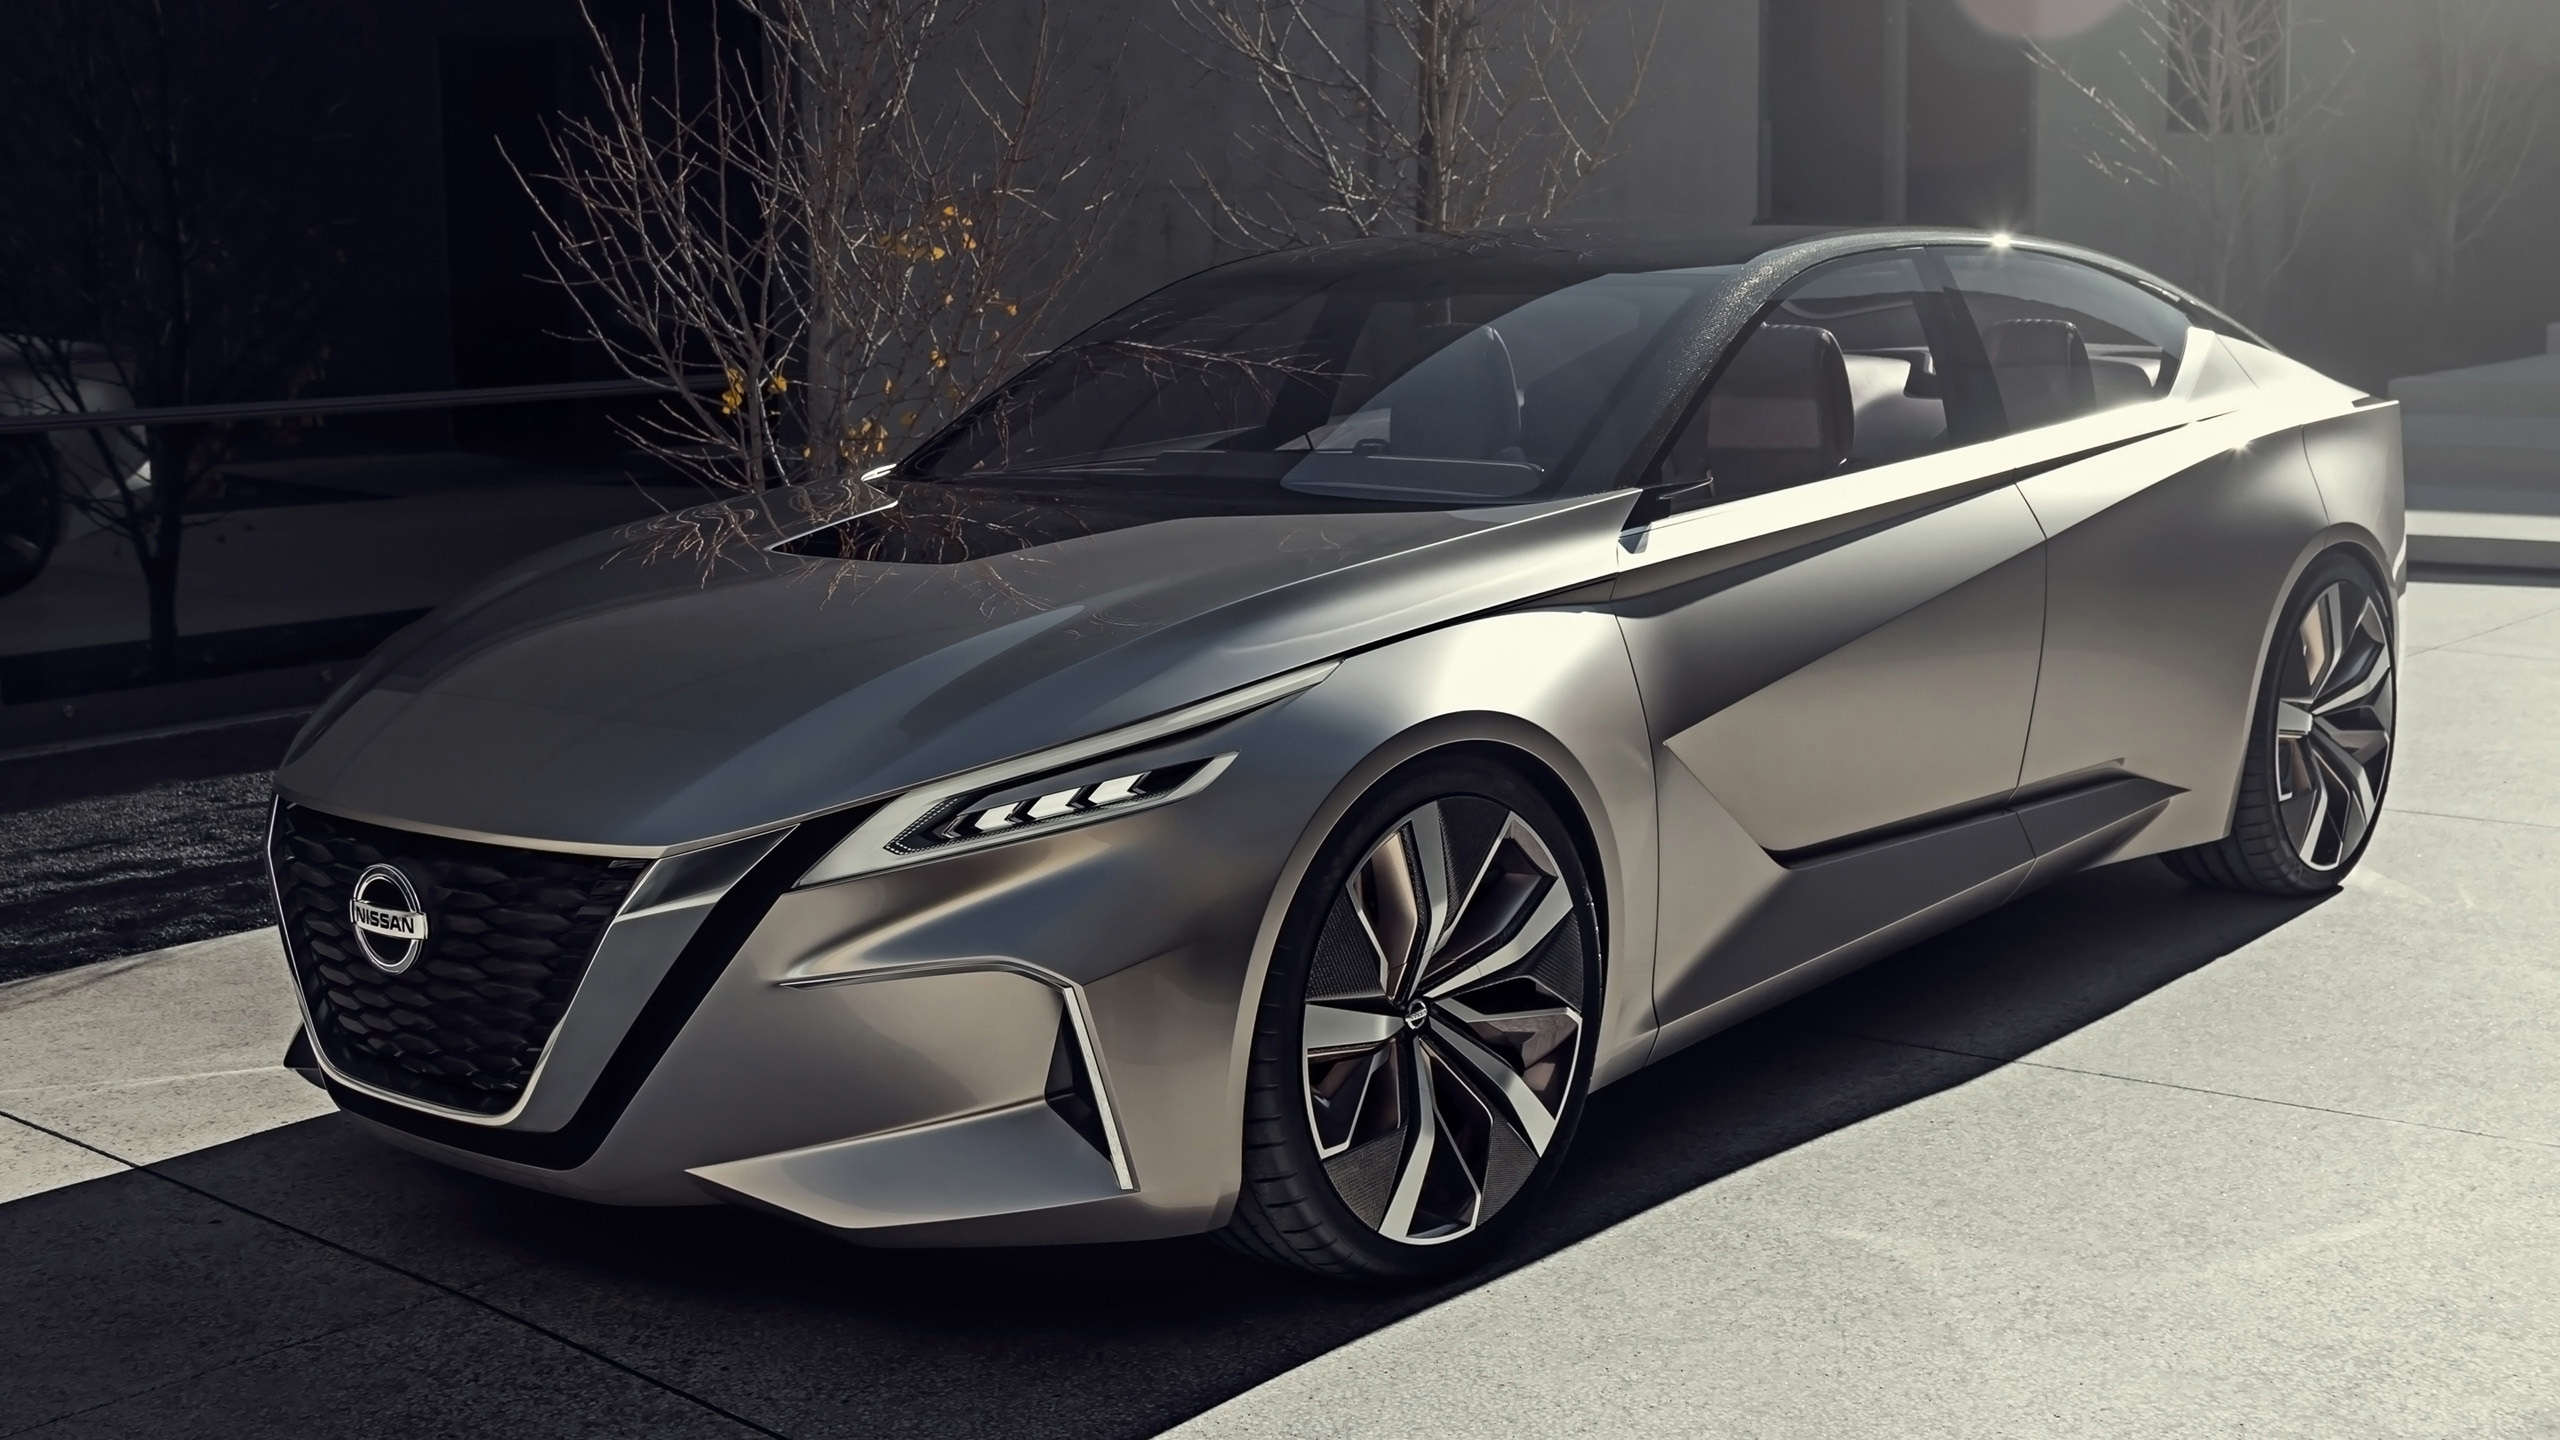 2017 Nissan Vmotion 2 Concept 5 Wallpaper Hd Car Wallpapers Id